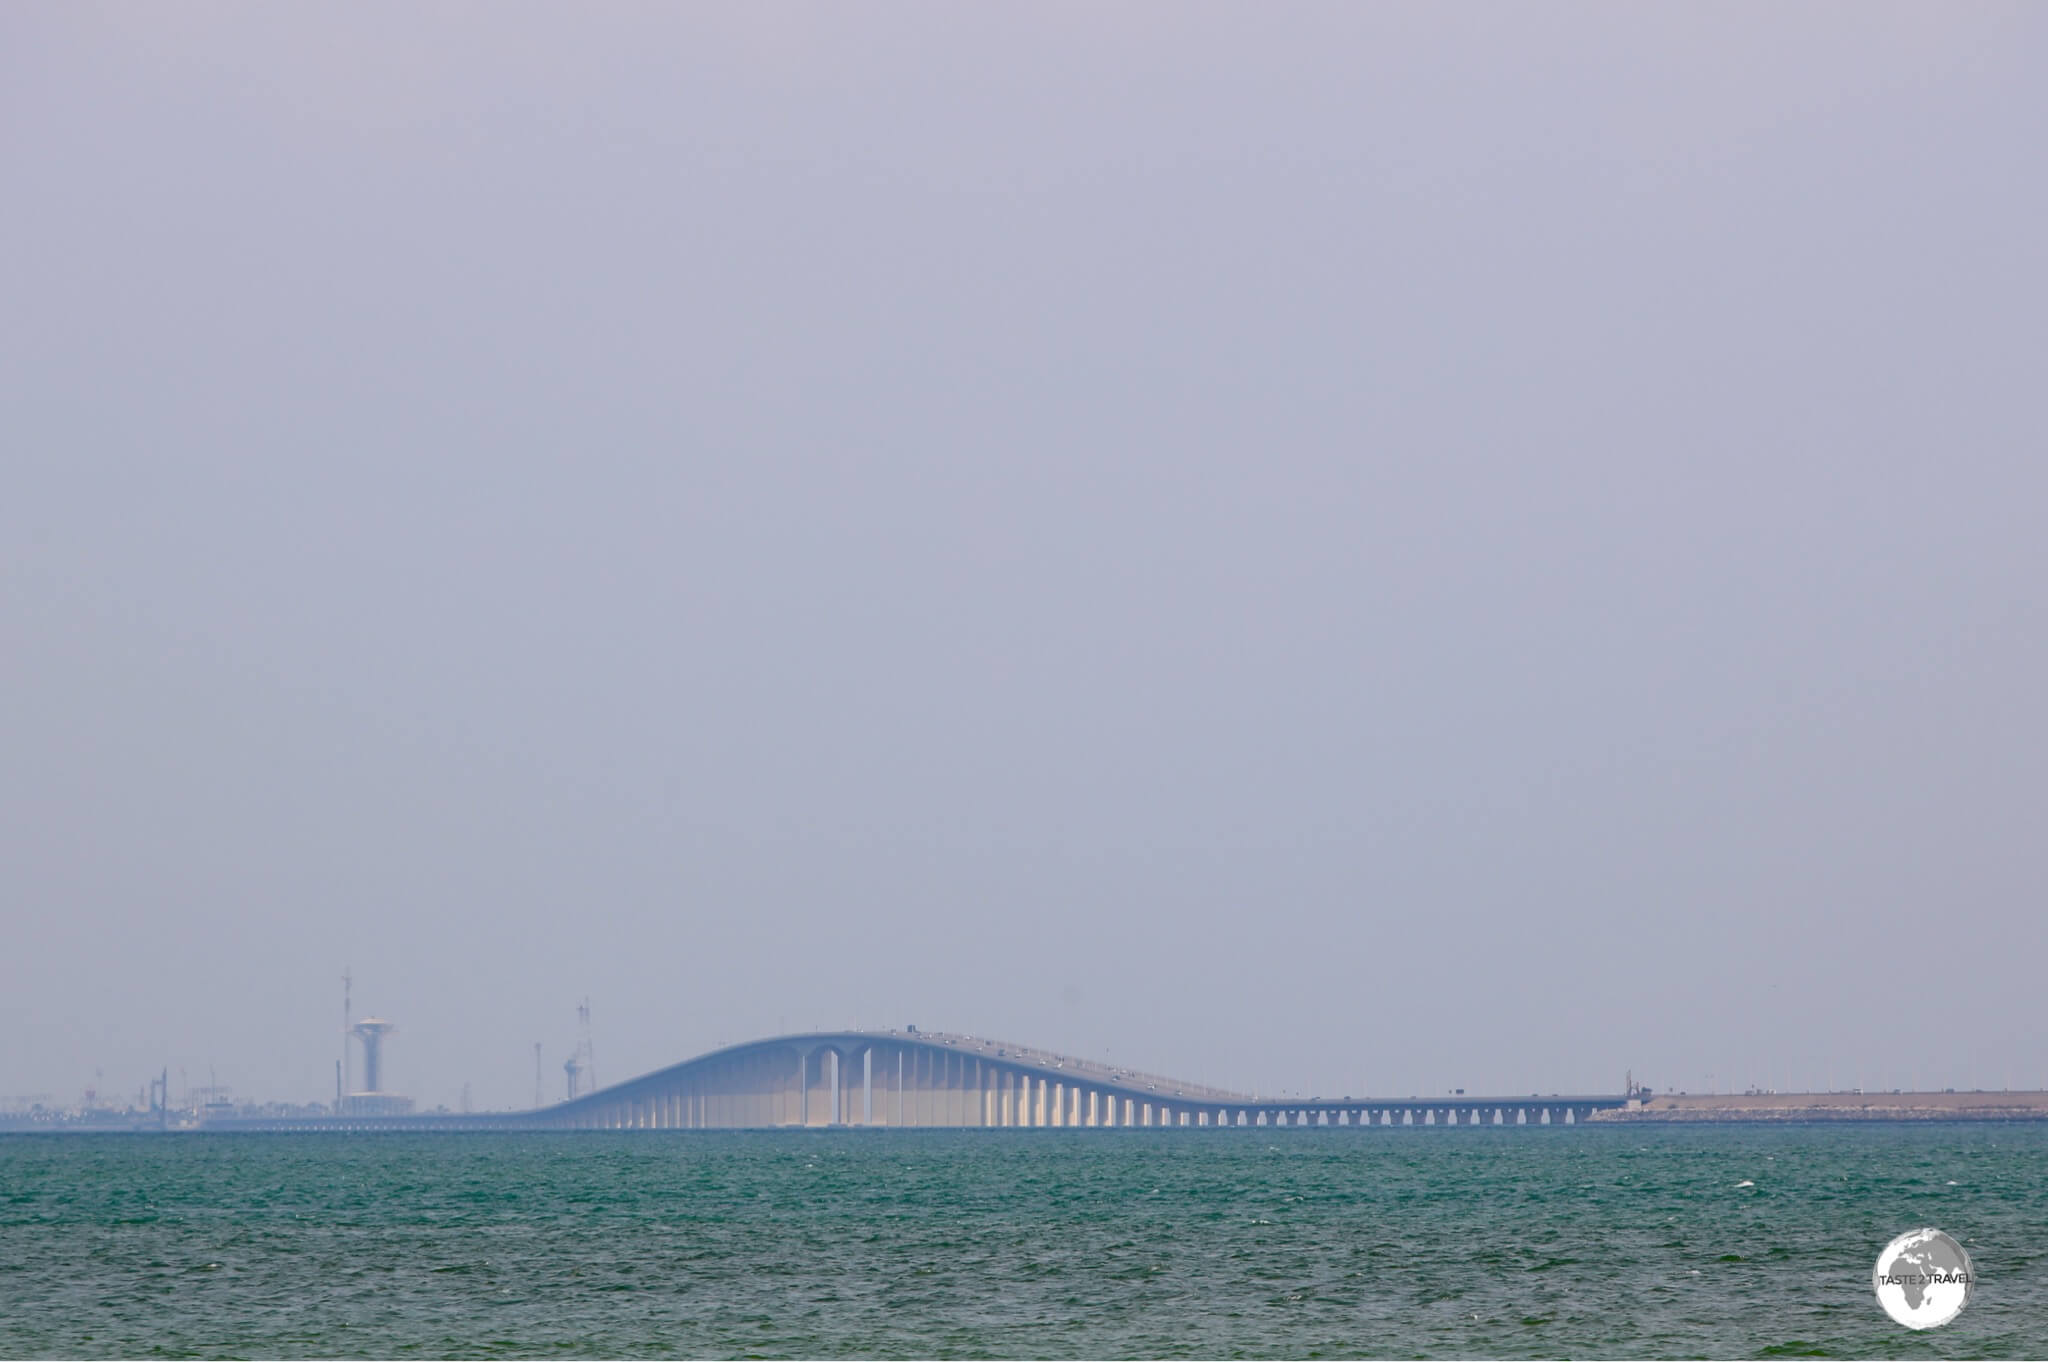 The King Fahd Causeway connects Saudi Arabia to Bahrain.